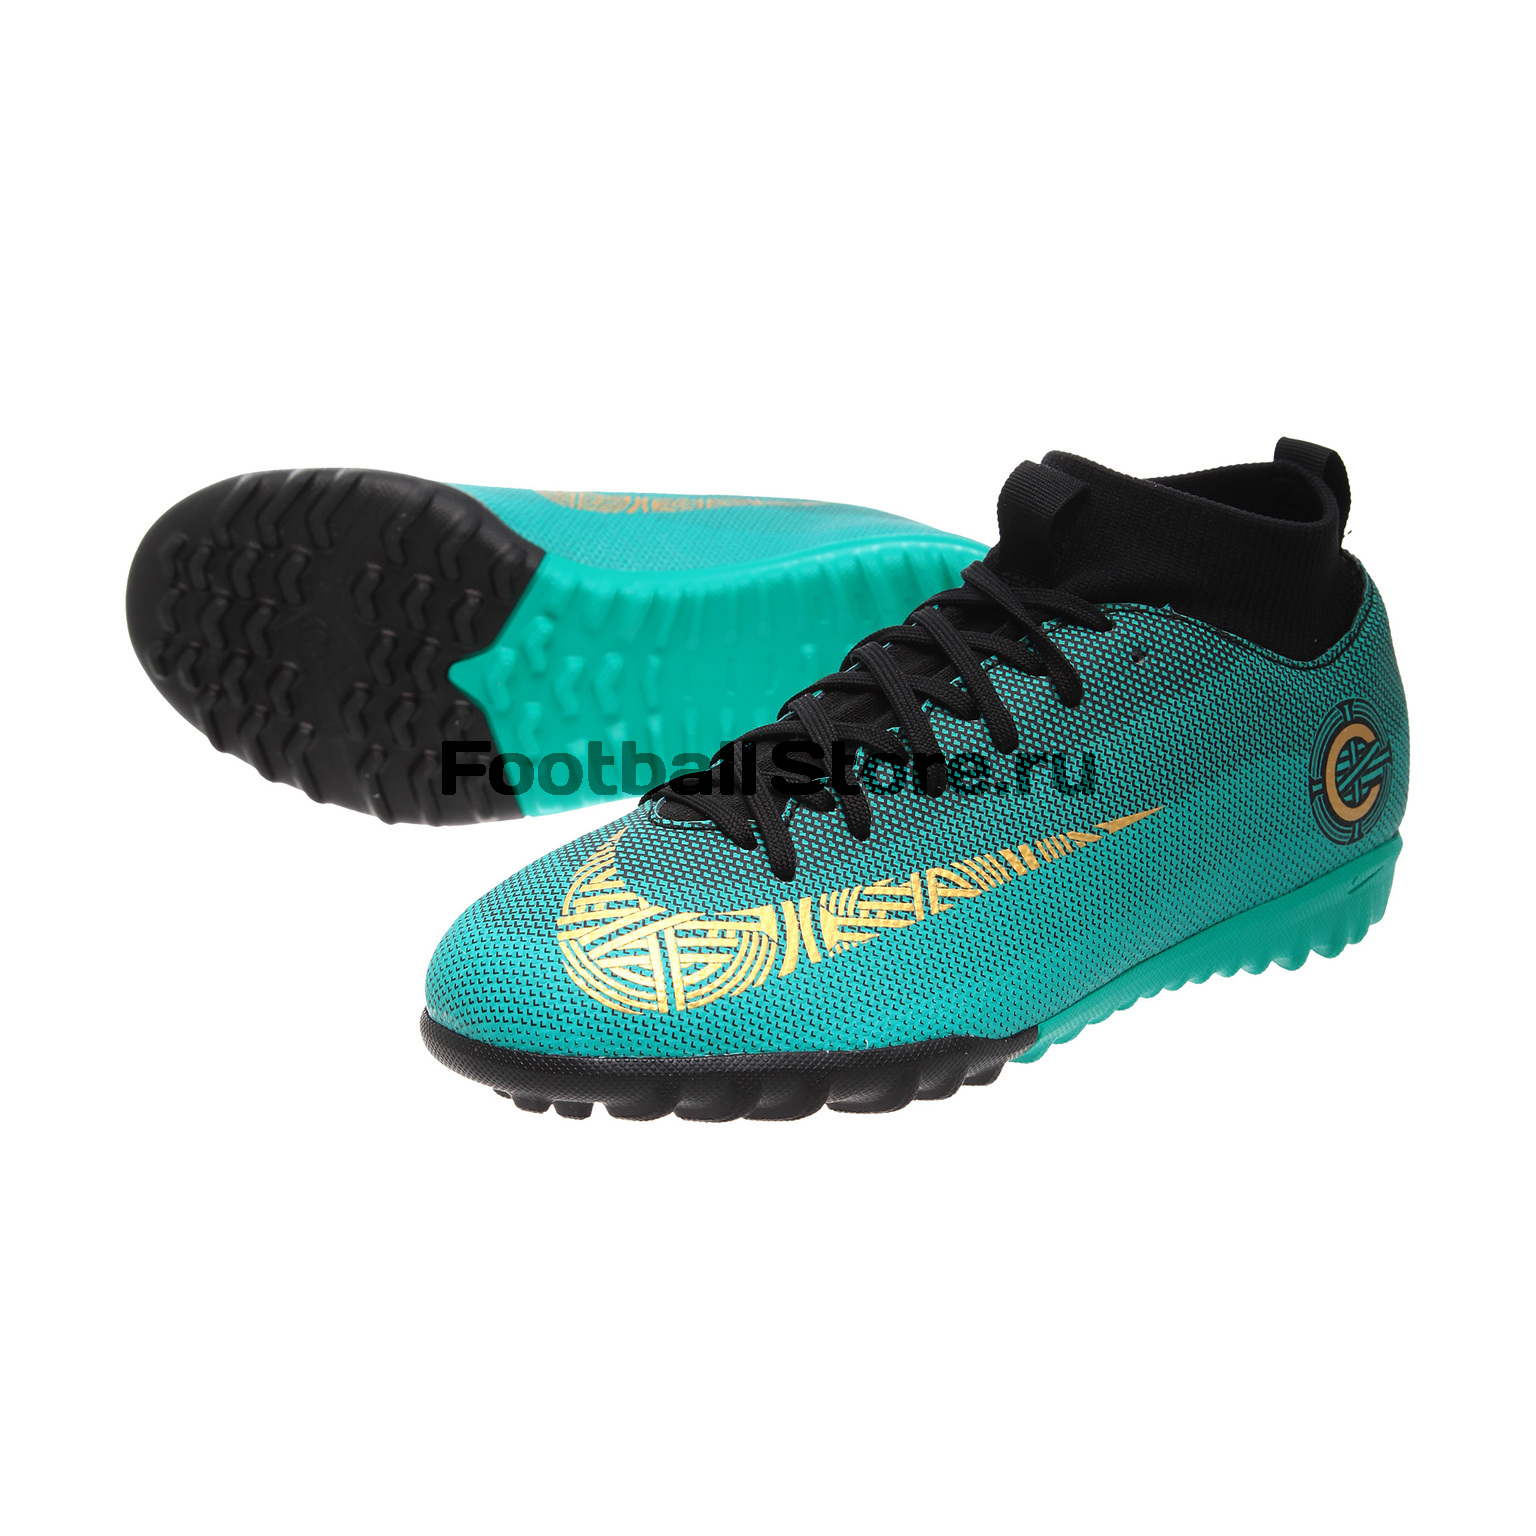 Шиповки Nike Superfly 6 Academy CR7 JR TF AJ3112-390 бутсы nike superfly academy gs cr7 jr fg mg aj3111 390